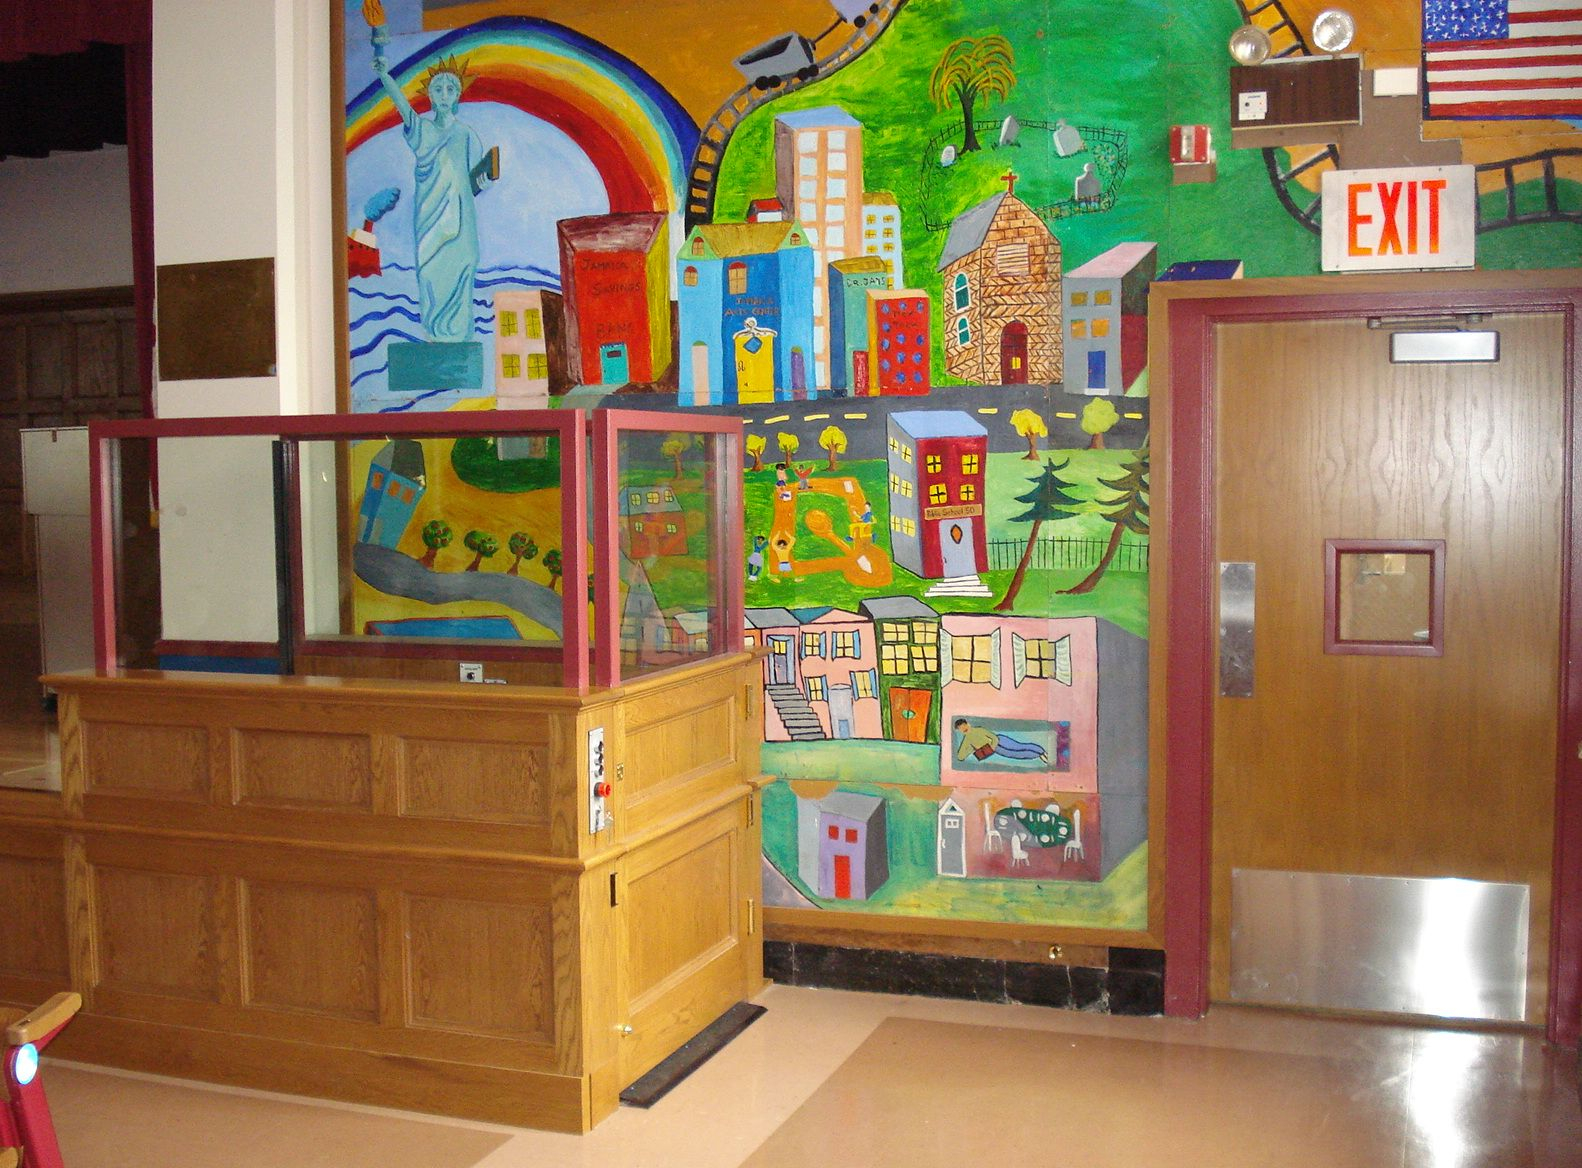 Side view of lift in school providing access to a stage in multipurpose room. Lower half of lift encased in wood millwork. Upper half of lift stationary sidewalls made of glass allowing mural to be visible from seating area. Lift function readily available, independently operable.